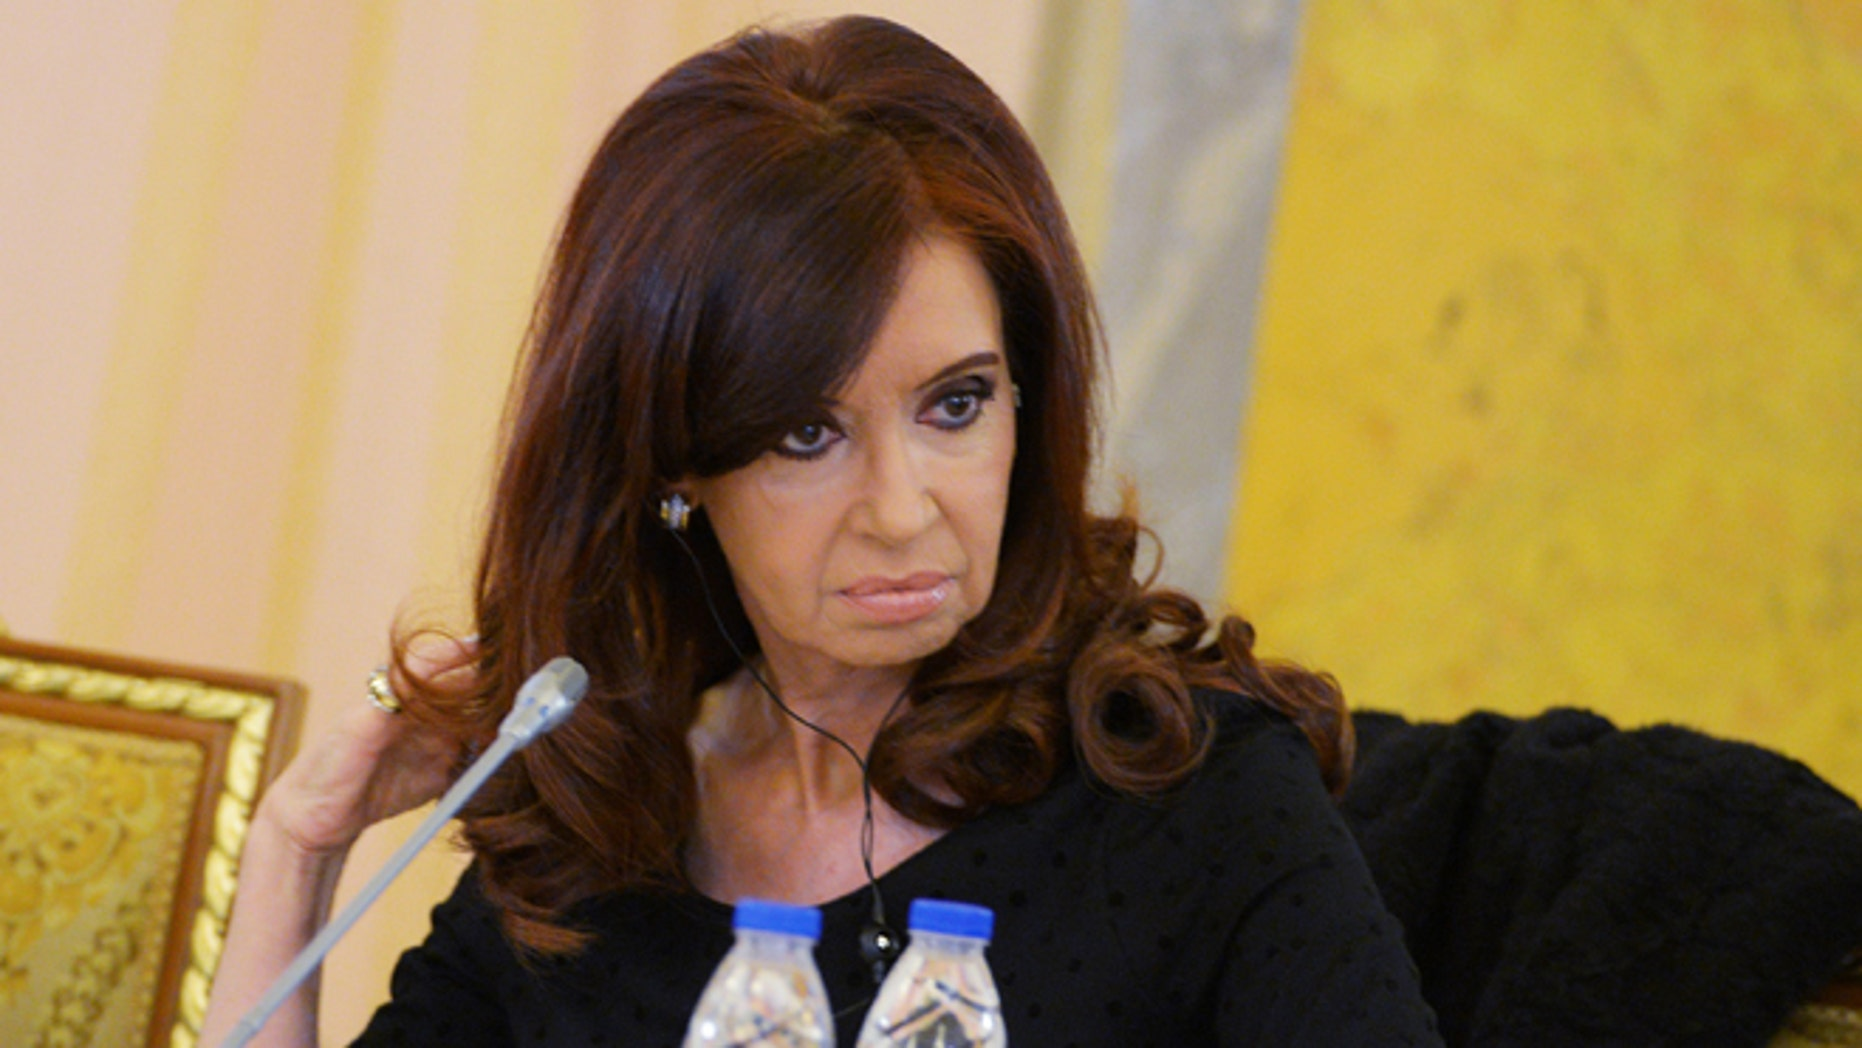 SAINT PETERSBURG - SEPTEMBER 05:  In this handout image provided by Host Photo Agency, President of Argentina Cristina Fernandez de Kirchner attends the first working meeting of the G20 summit on September 5, 2013 in St. Petersburg, Russia.  The G20 summit is expected to be dominated by the issue of military action in Syria while issues surrounding the global economy, including tax avoidance by multinationals, will also be discussed duing the two-day summit.  (Photo by Alexei Danichev/Host Photo Agency via Getty Images)